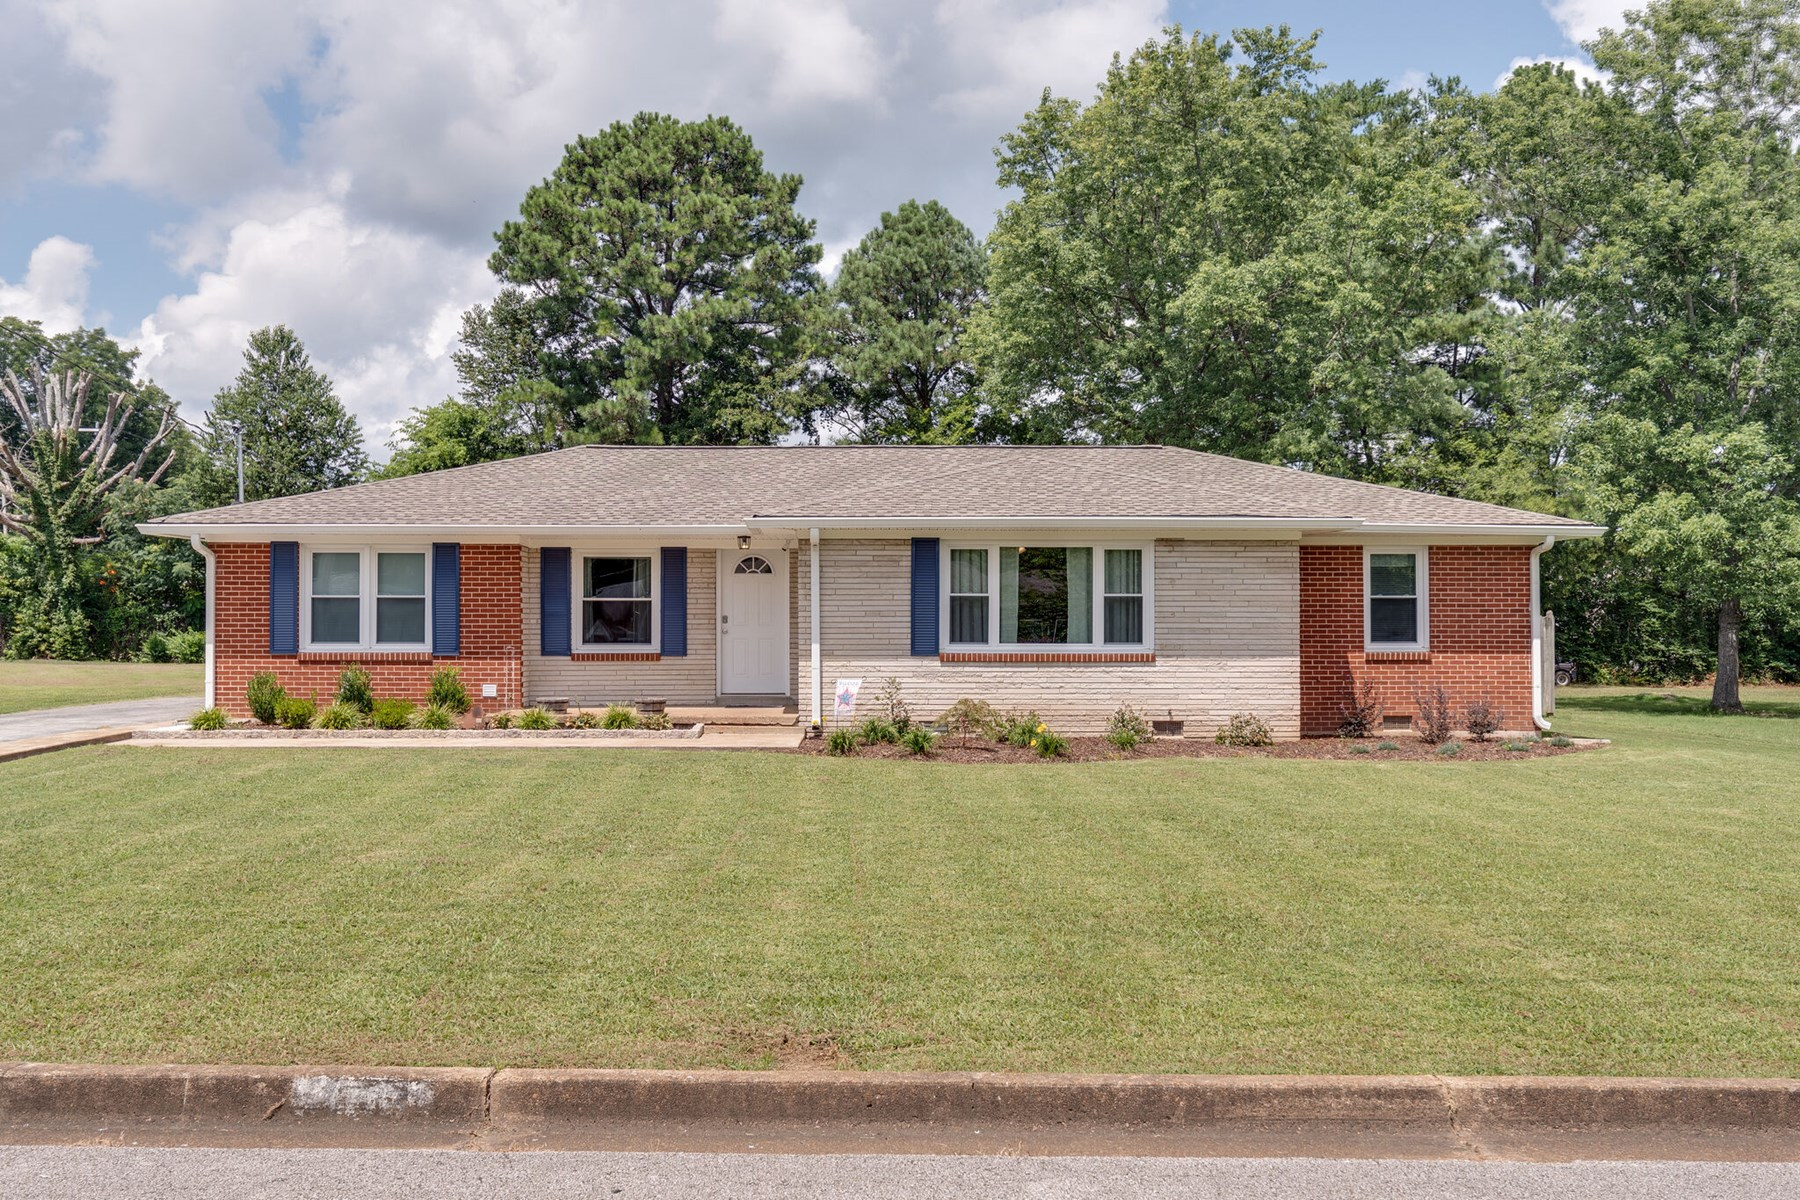 Home for Sale in Town in Mount Pleasant, Tennessee